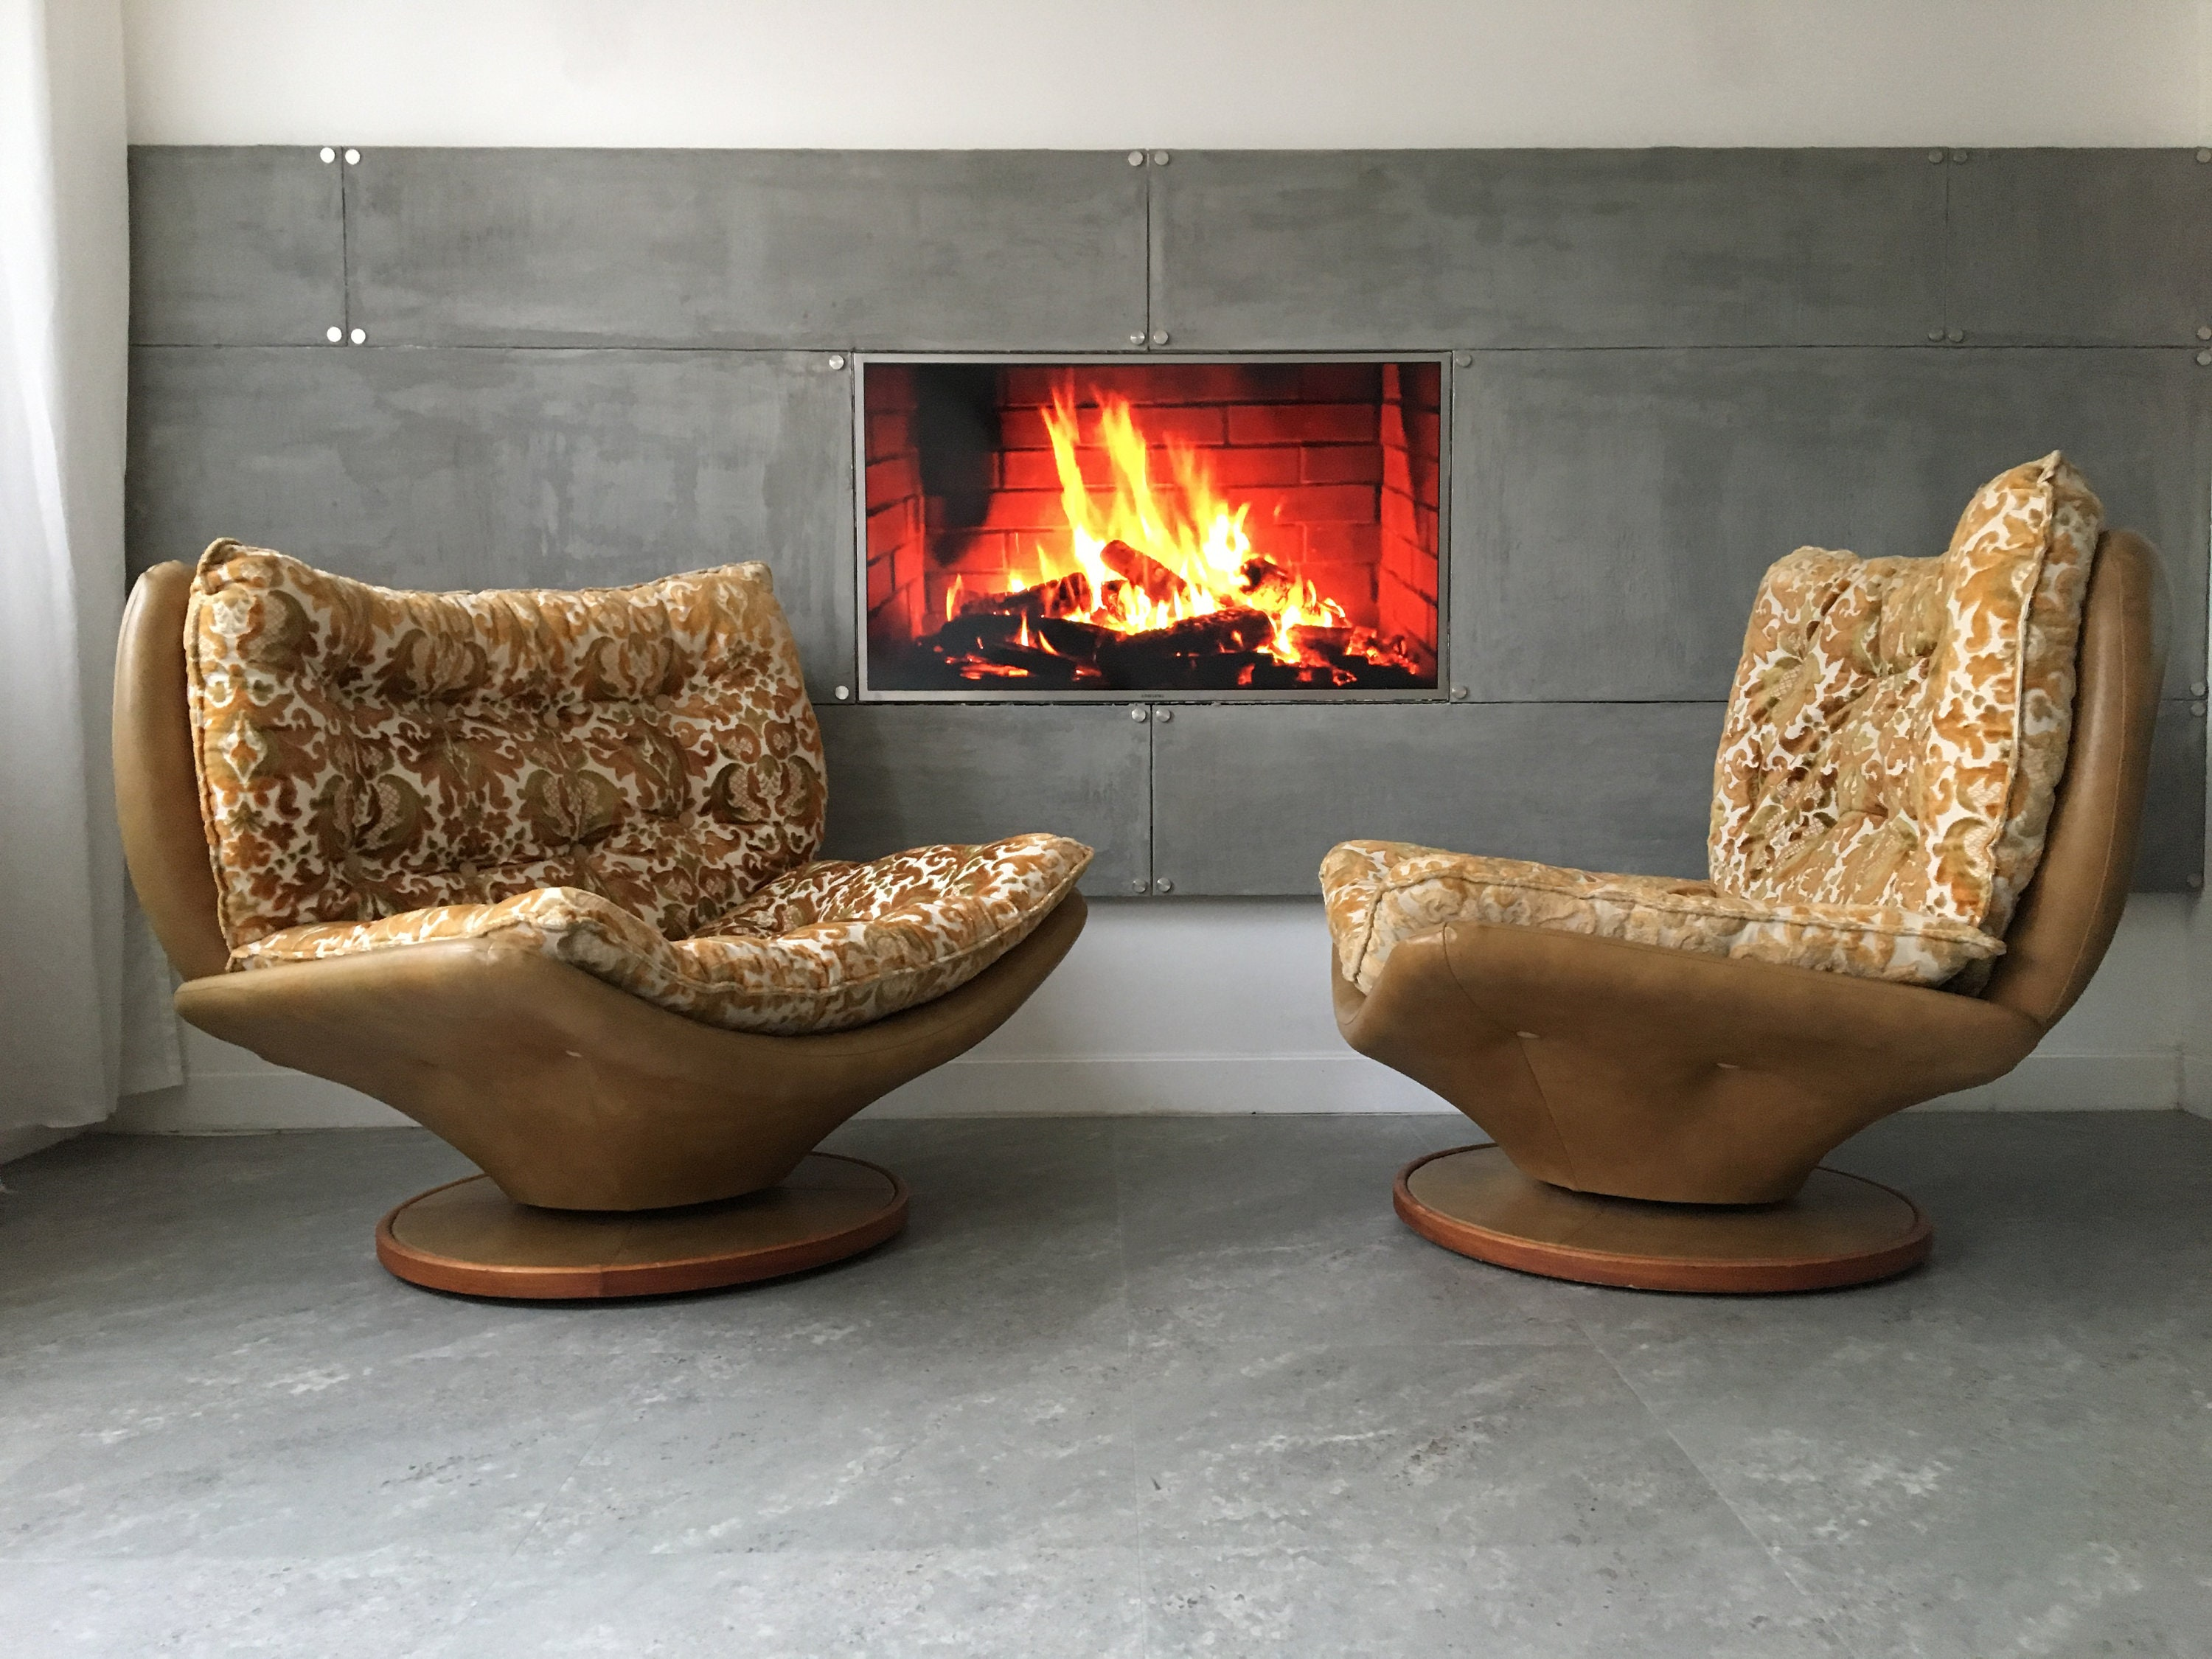 Vintage Design Retro Swivel Egg Chairs Armchairs Chaise Longue Set Of 2